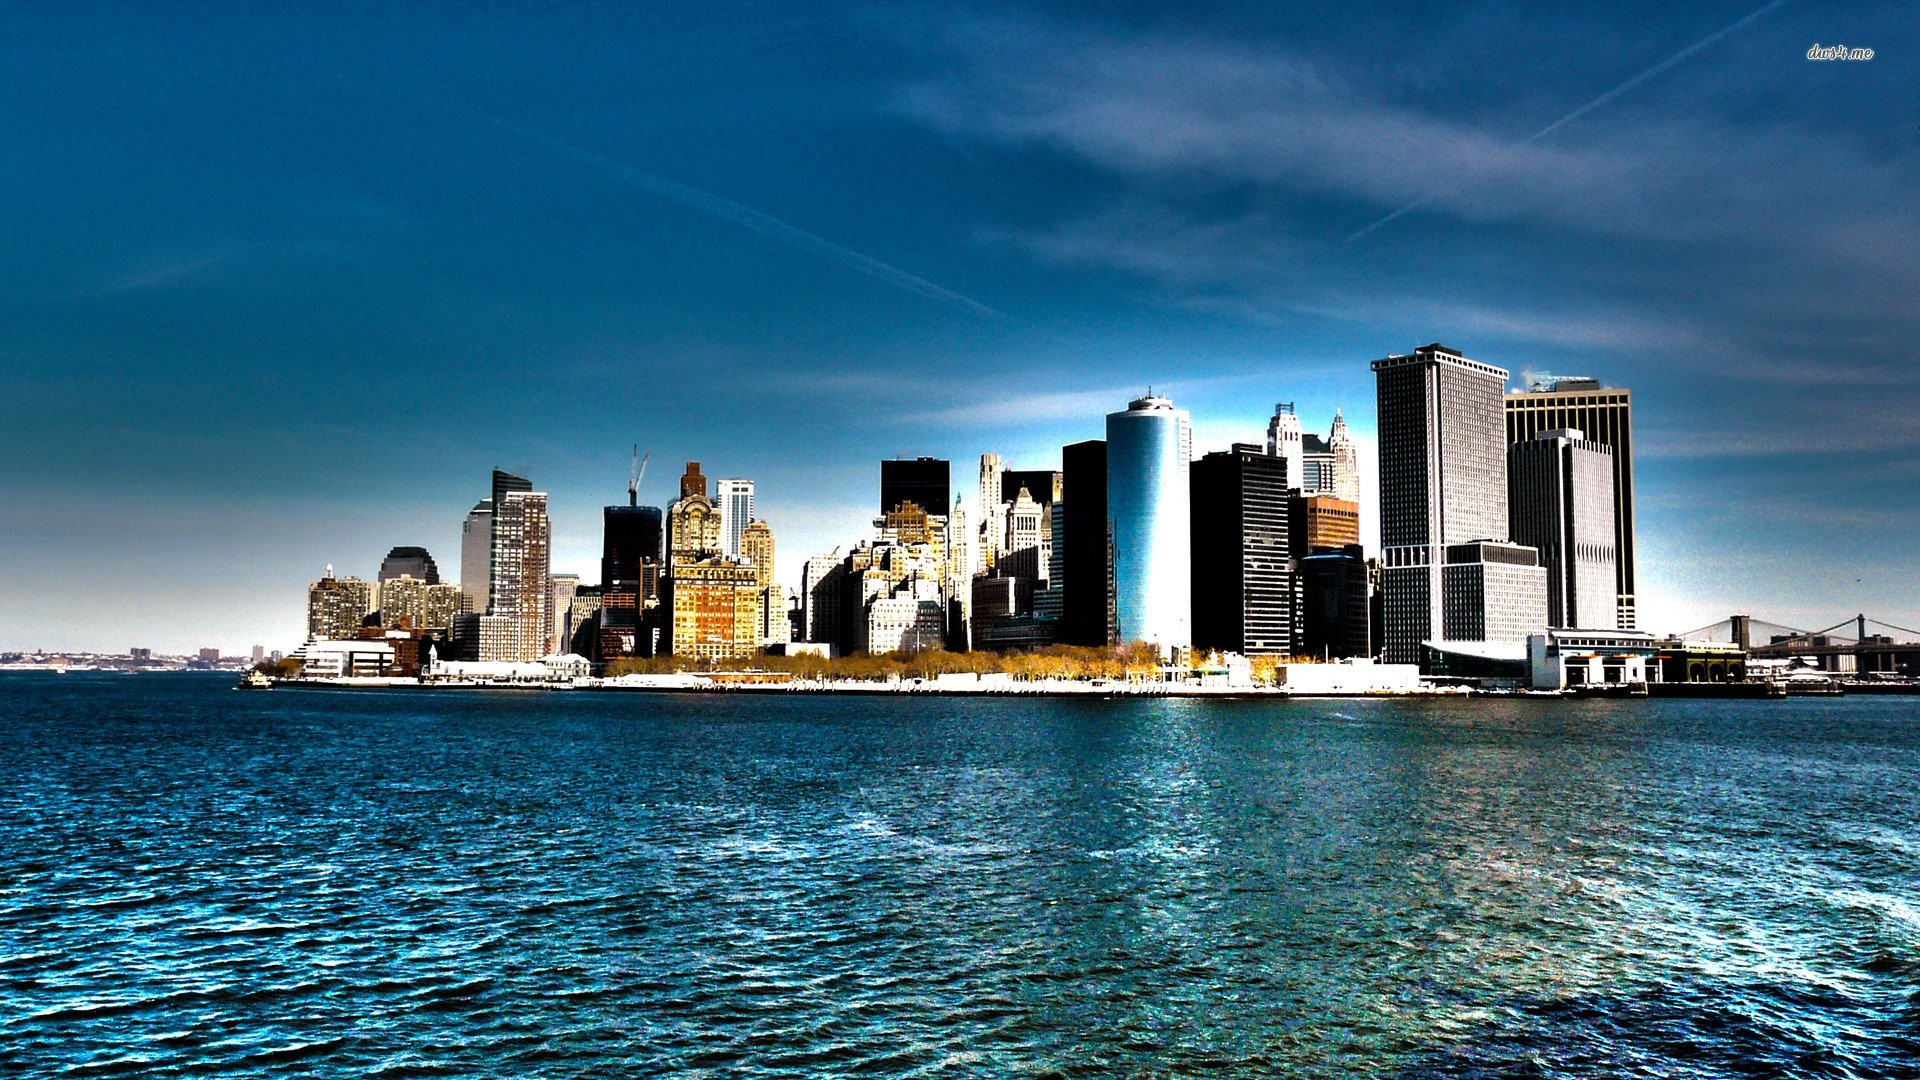 1920x1080 New York City Skyline 179195